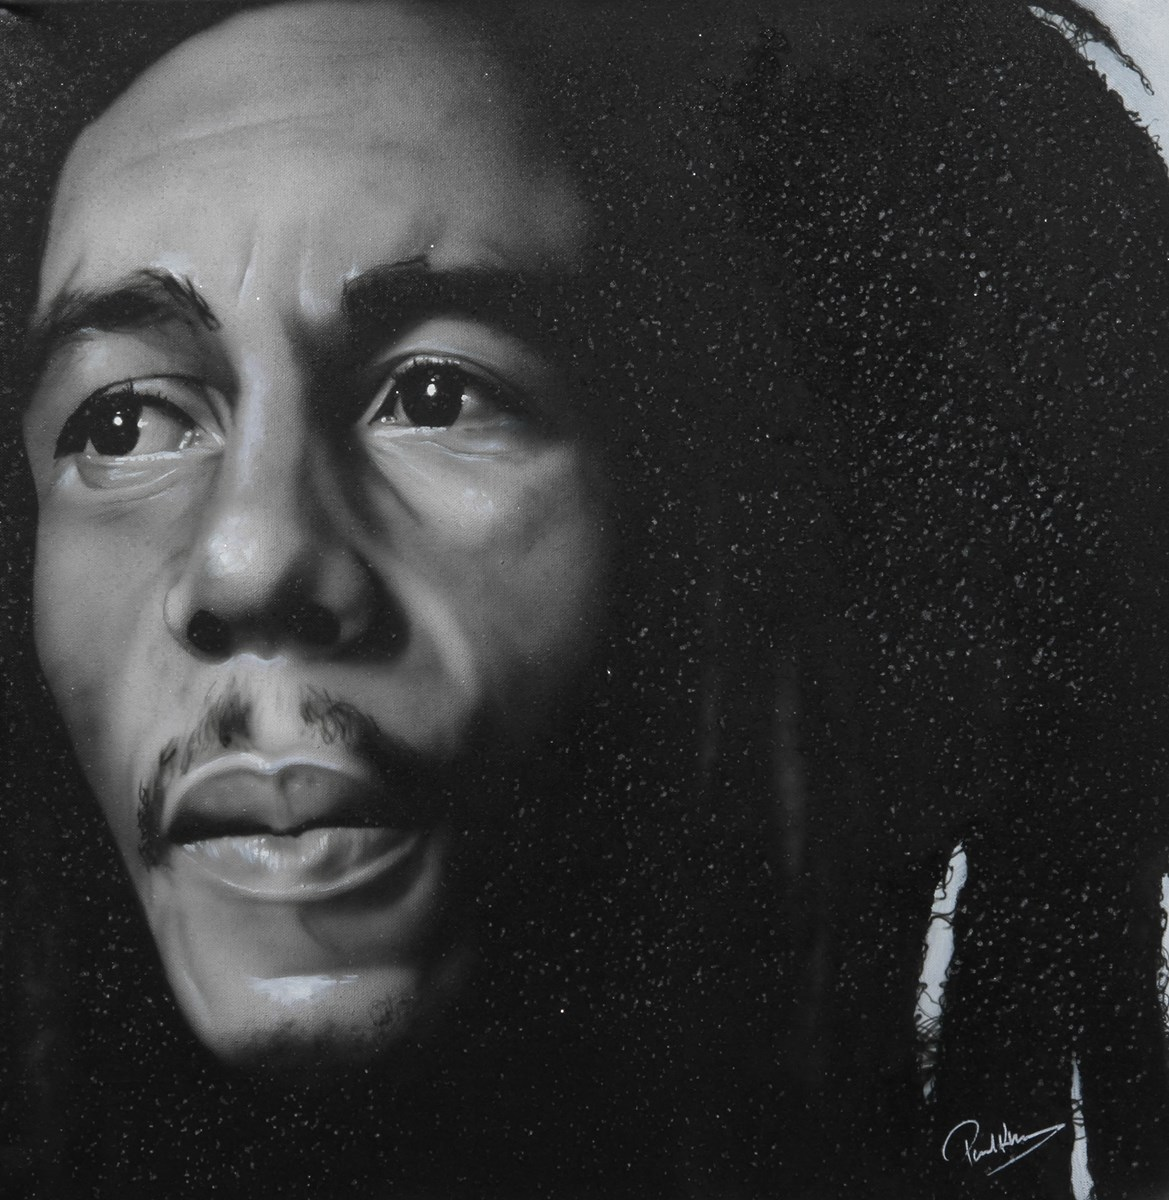 Bob Marley III by paul karslake - Orig Monochrome Airbrush W/Diamond Dust on Canvas sized 28x28 inches. Available from Whitewall Galleries